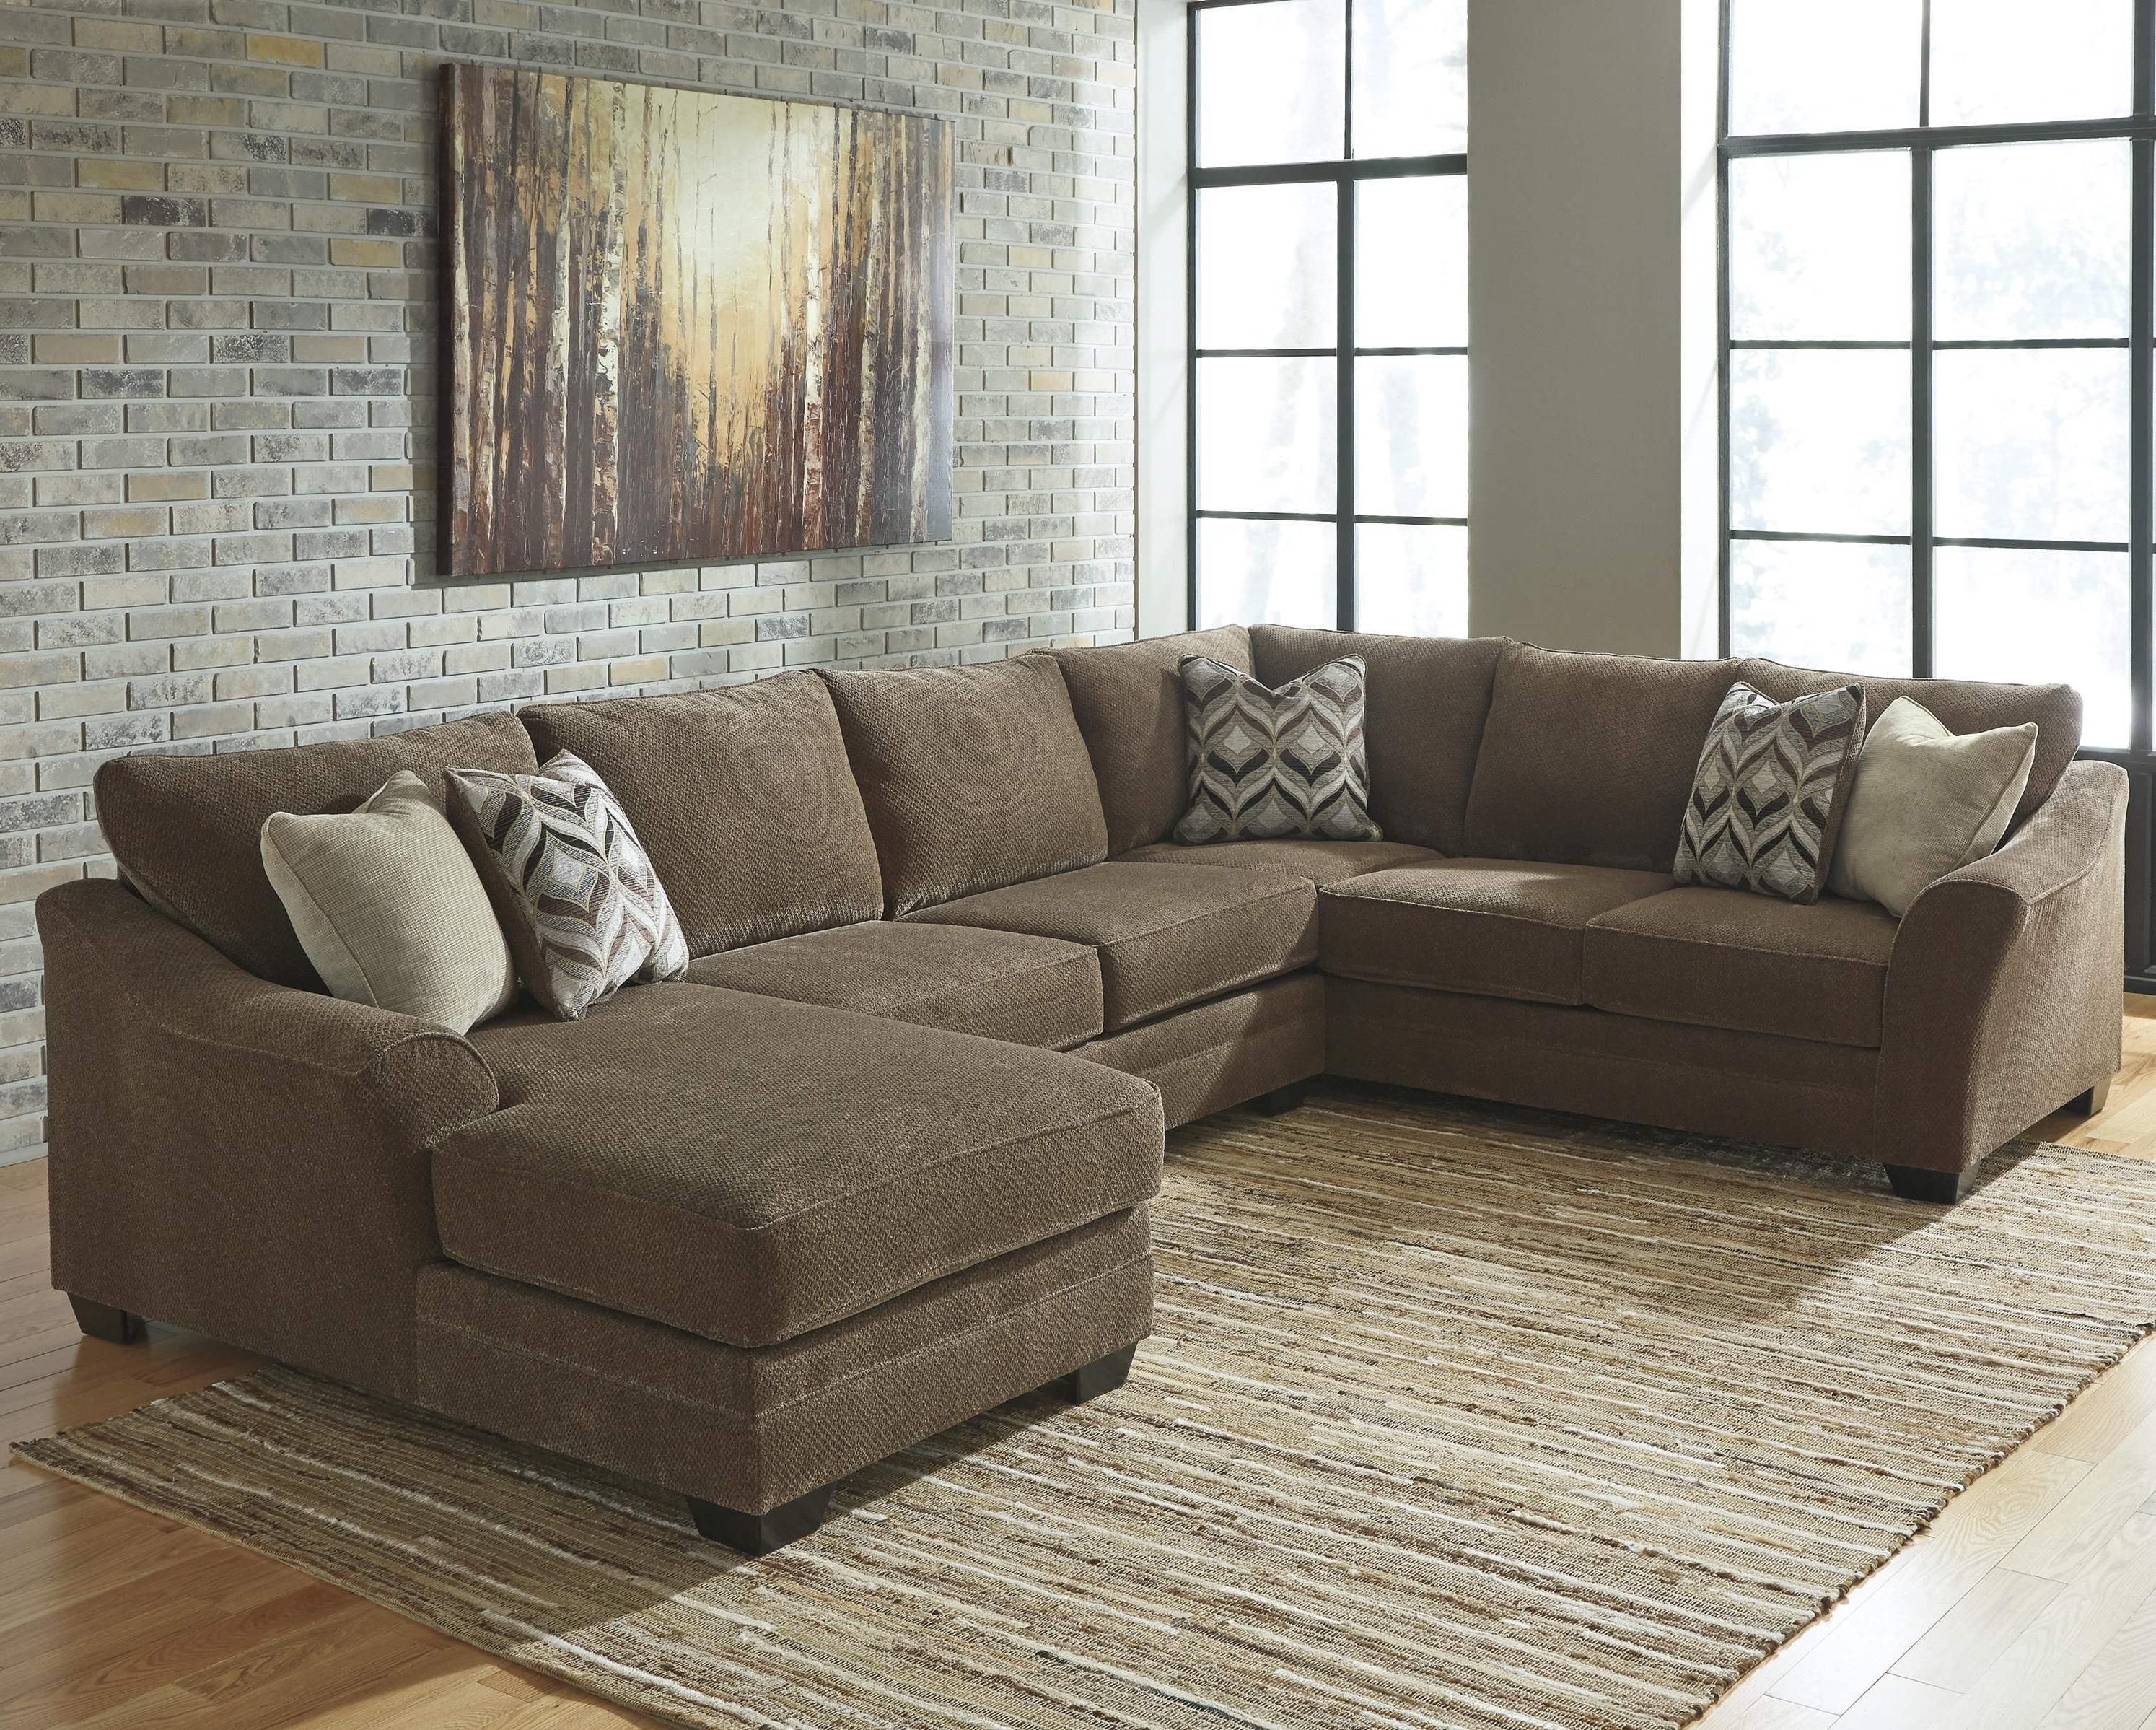 Most Recently Released Justyna Contemporary 3 Piece Sectional With Right Chaise For Murfreesboro Tn Sectional Sofas (View 12 of 20)